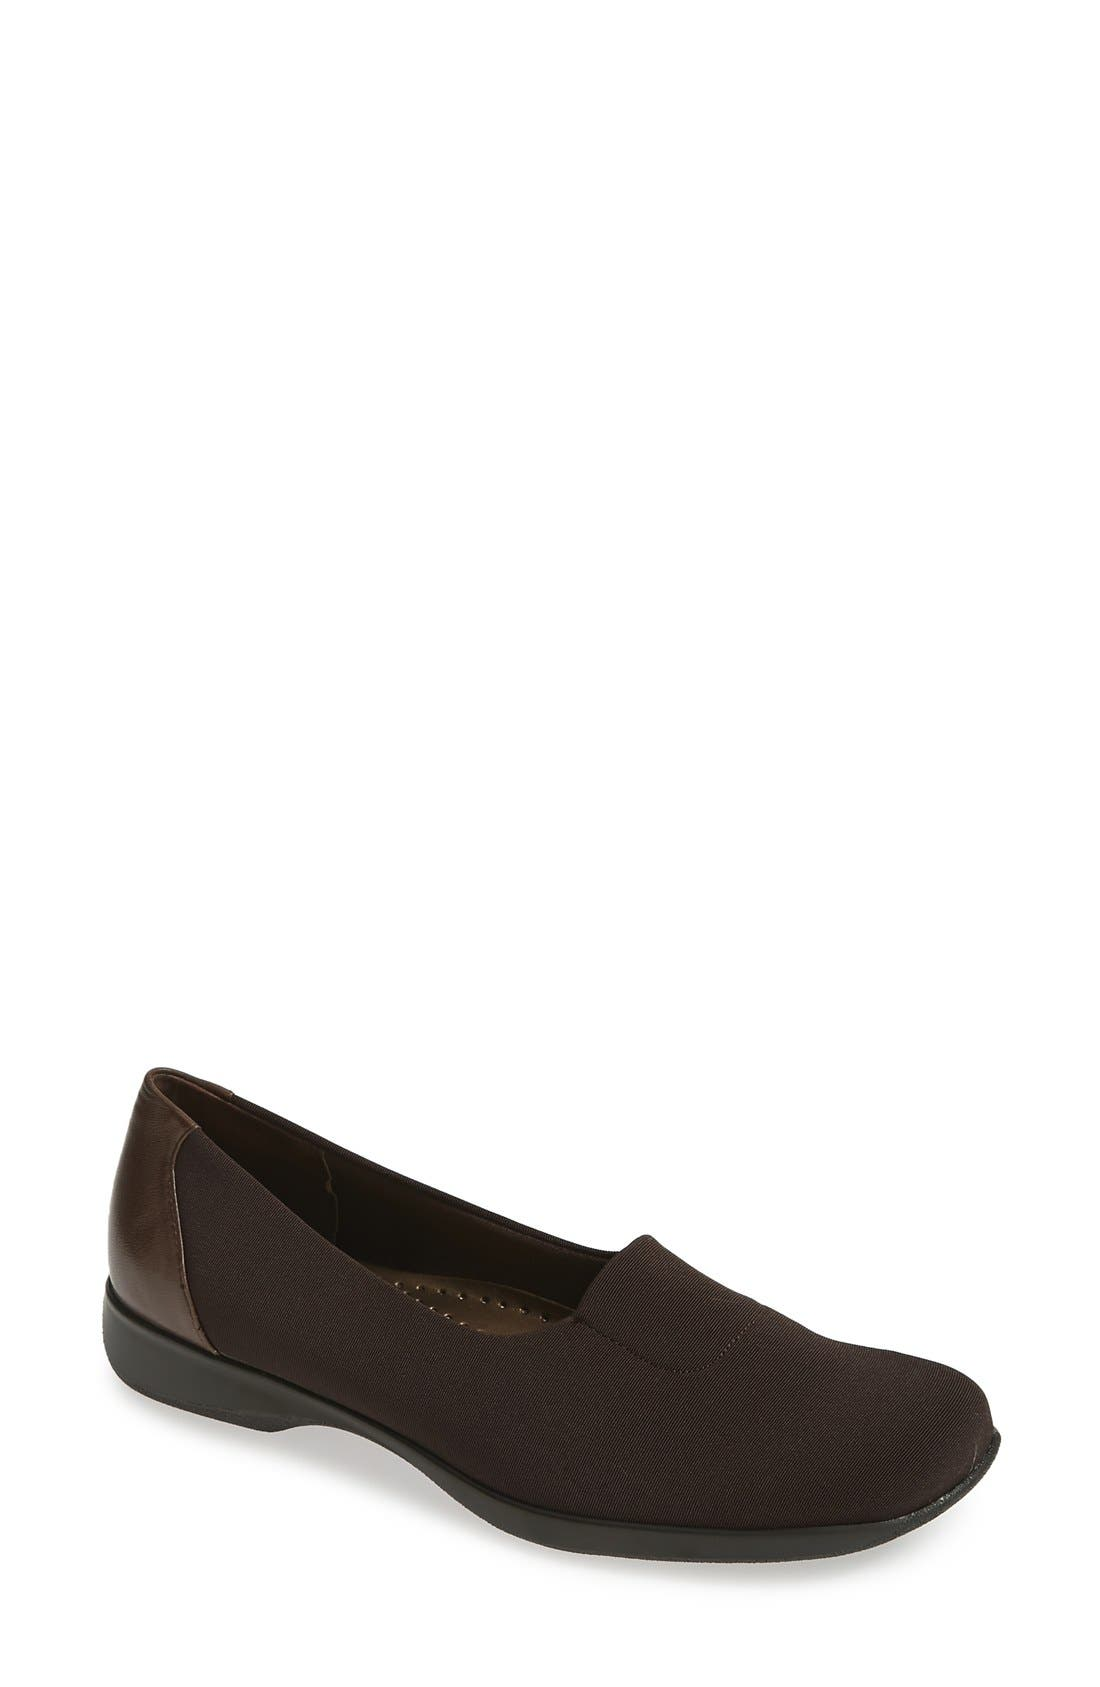 'Signature Jake' Slip On,                             Main thumbnail 1, color,                             DARK BROWN